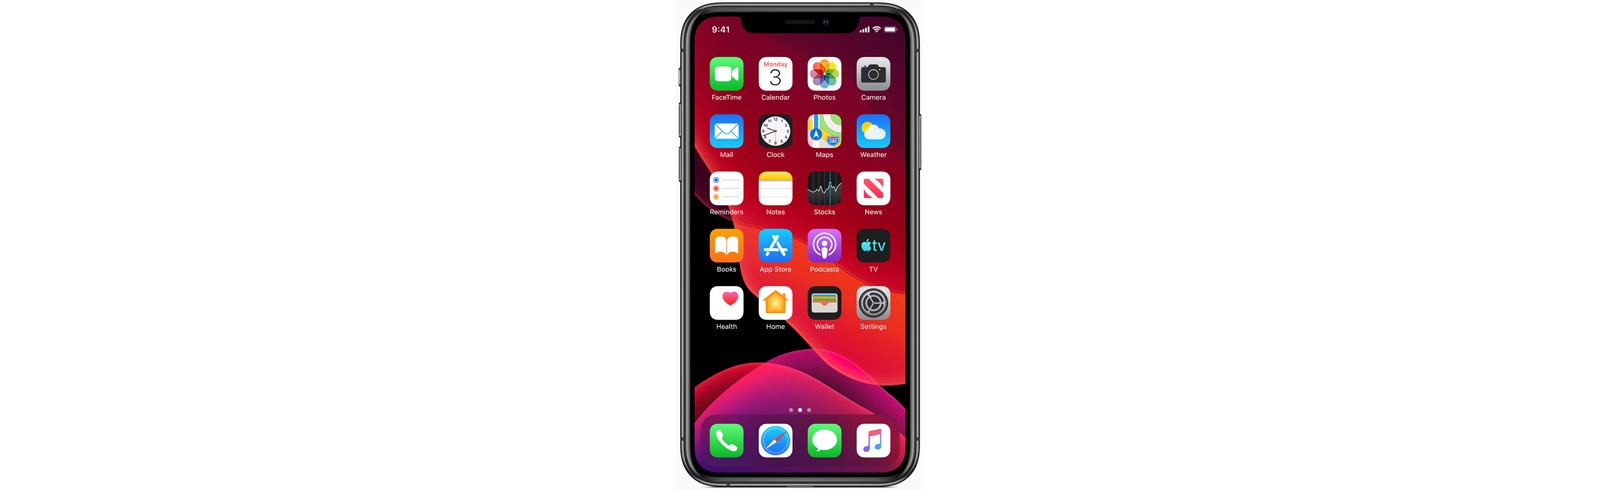 Apple iOS 13 is official, includes Dark Mode, optimized apps, enhanced security